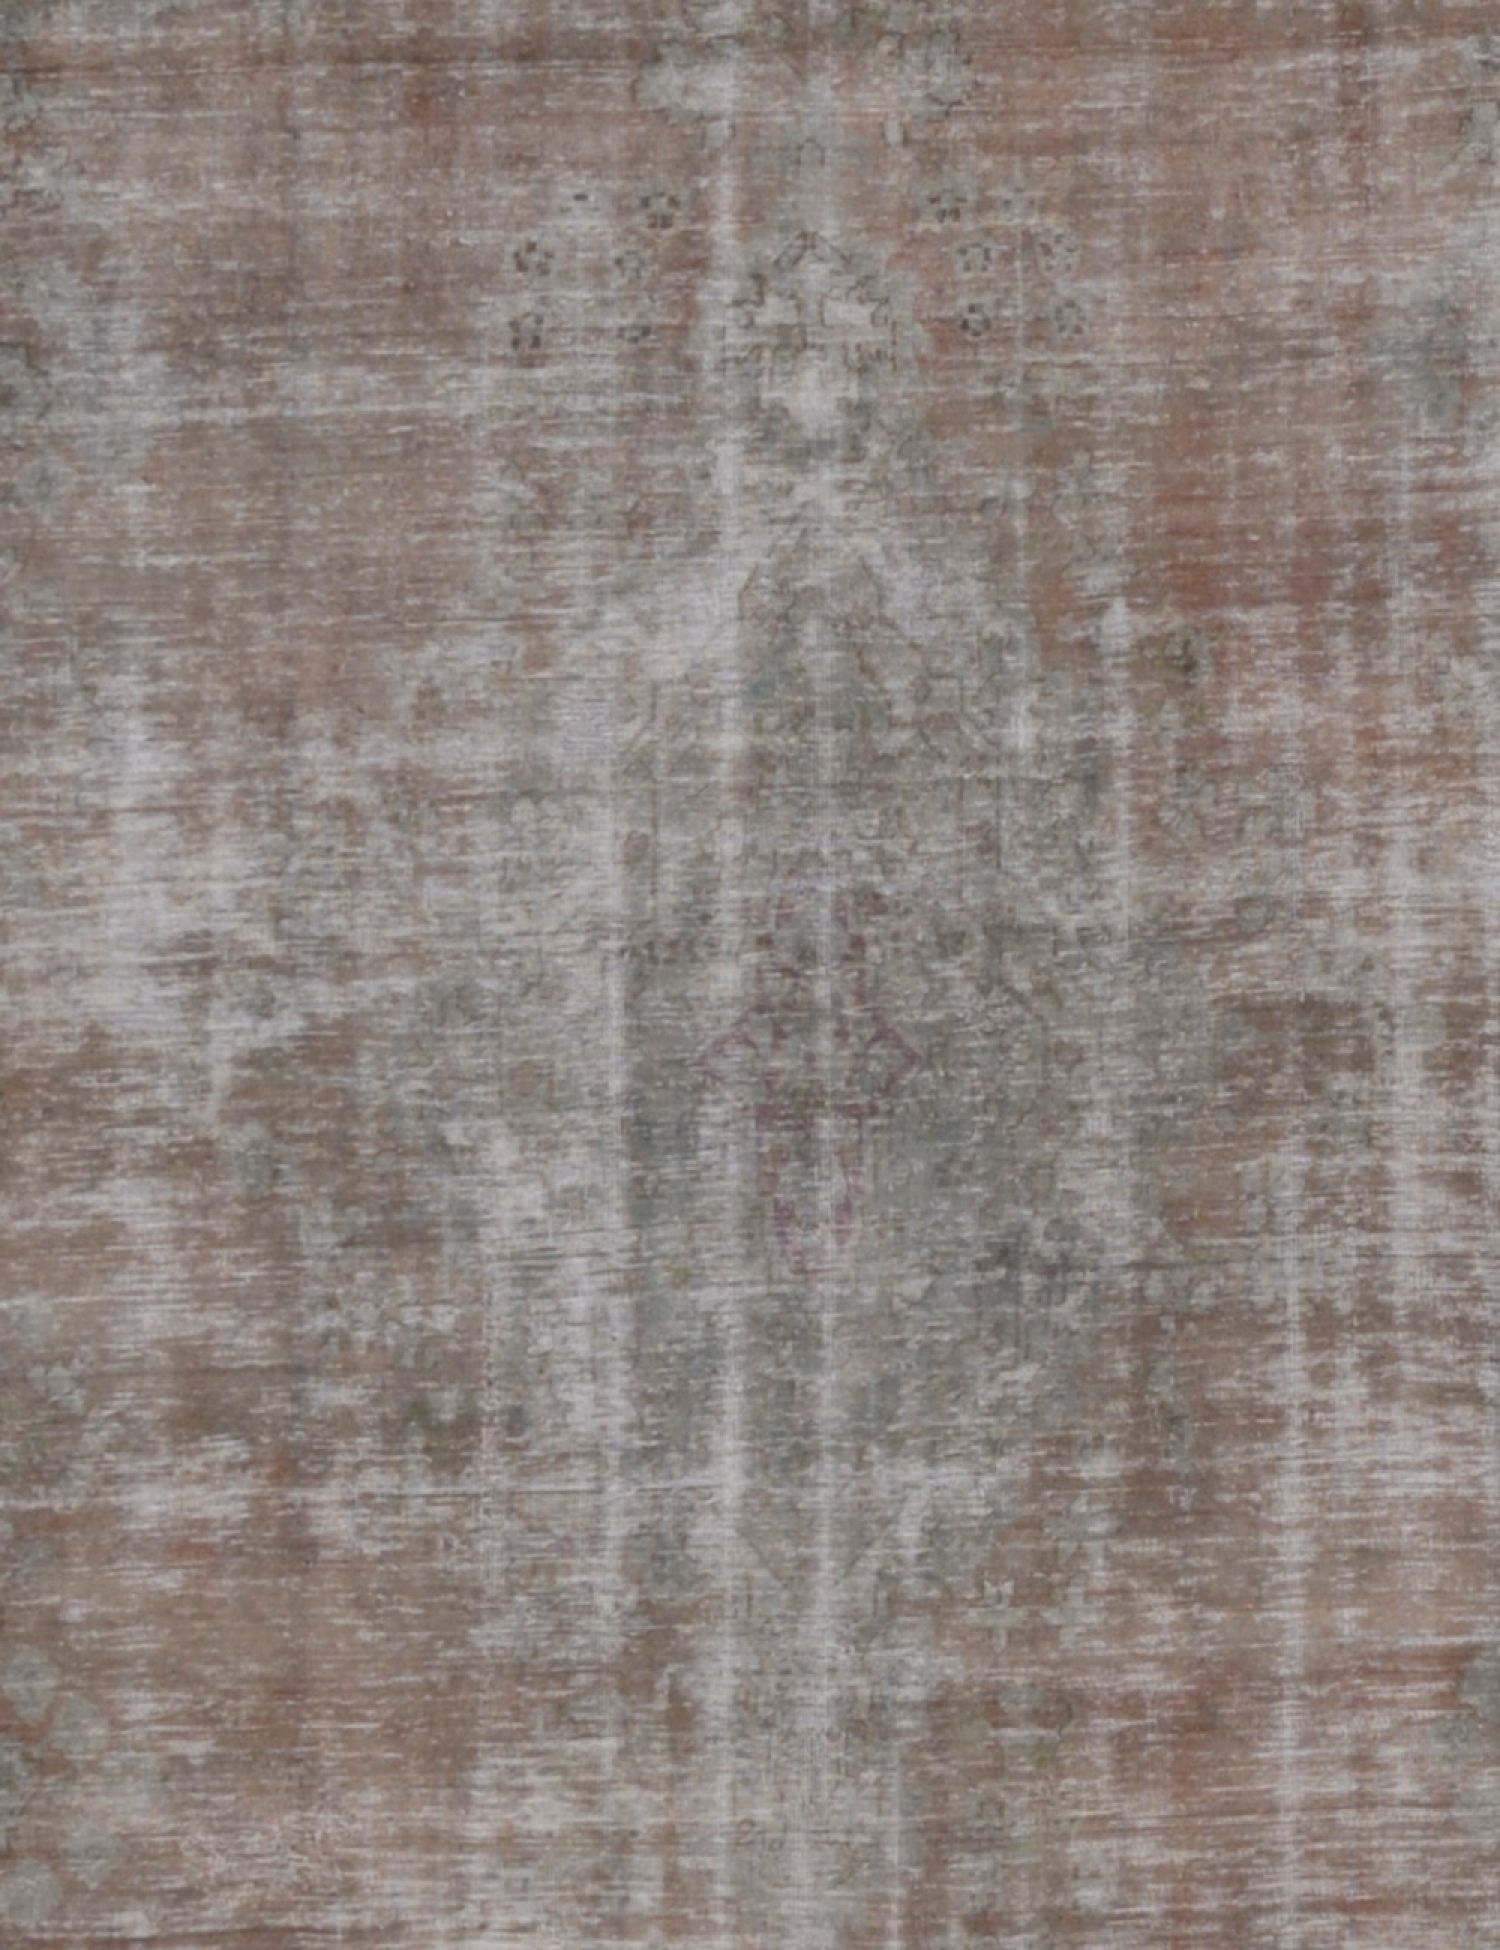 Vintage Carpet  grey <br/>377 x 283 cm